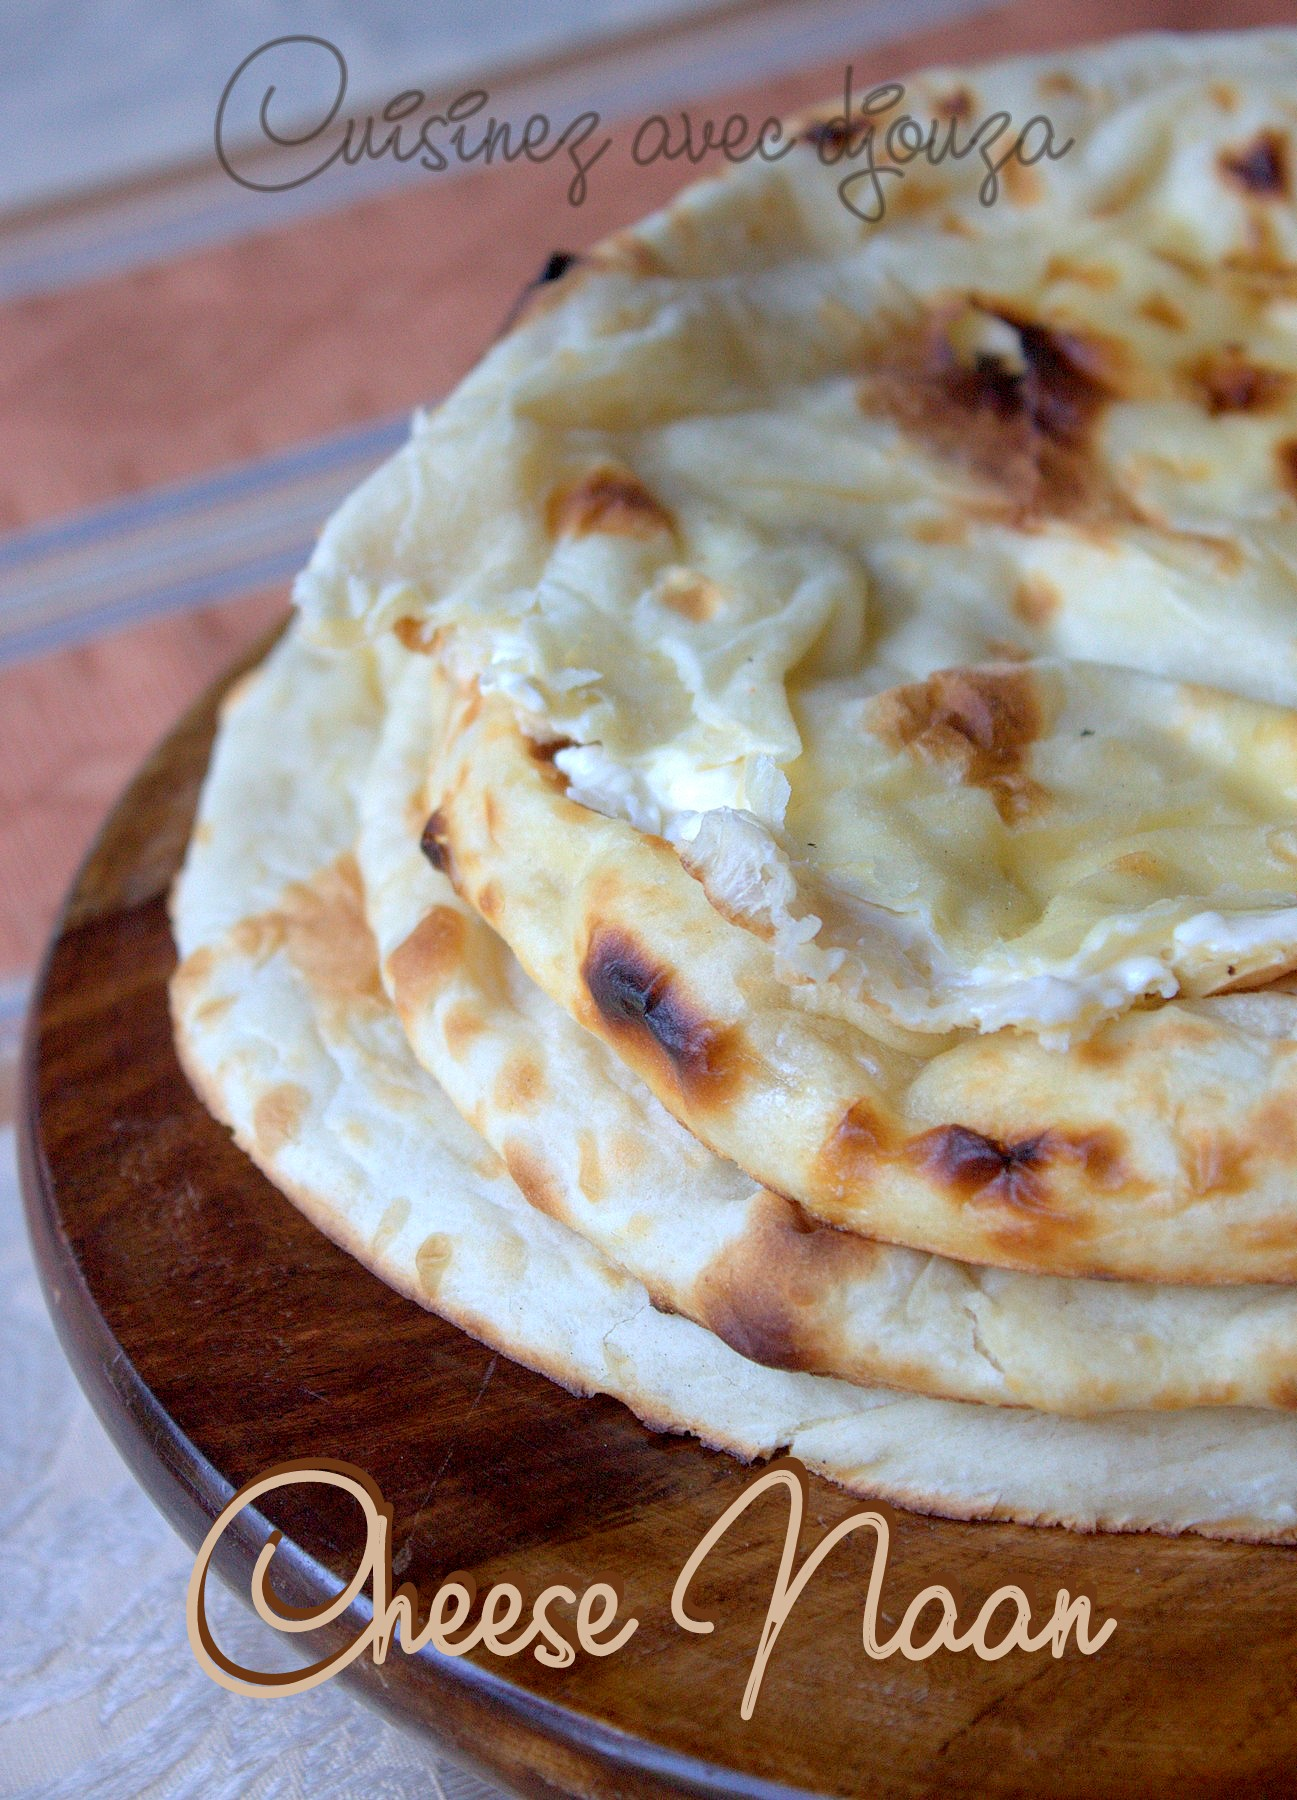 cheese naan ou naans au fromage recettes faciles recettes rapides de djouza. Black Bedroom Furniture Sets. Home Design Ideas